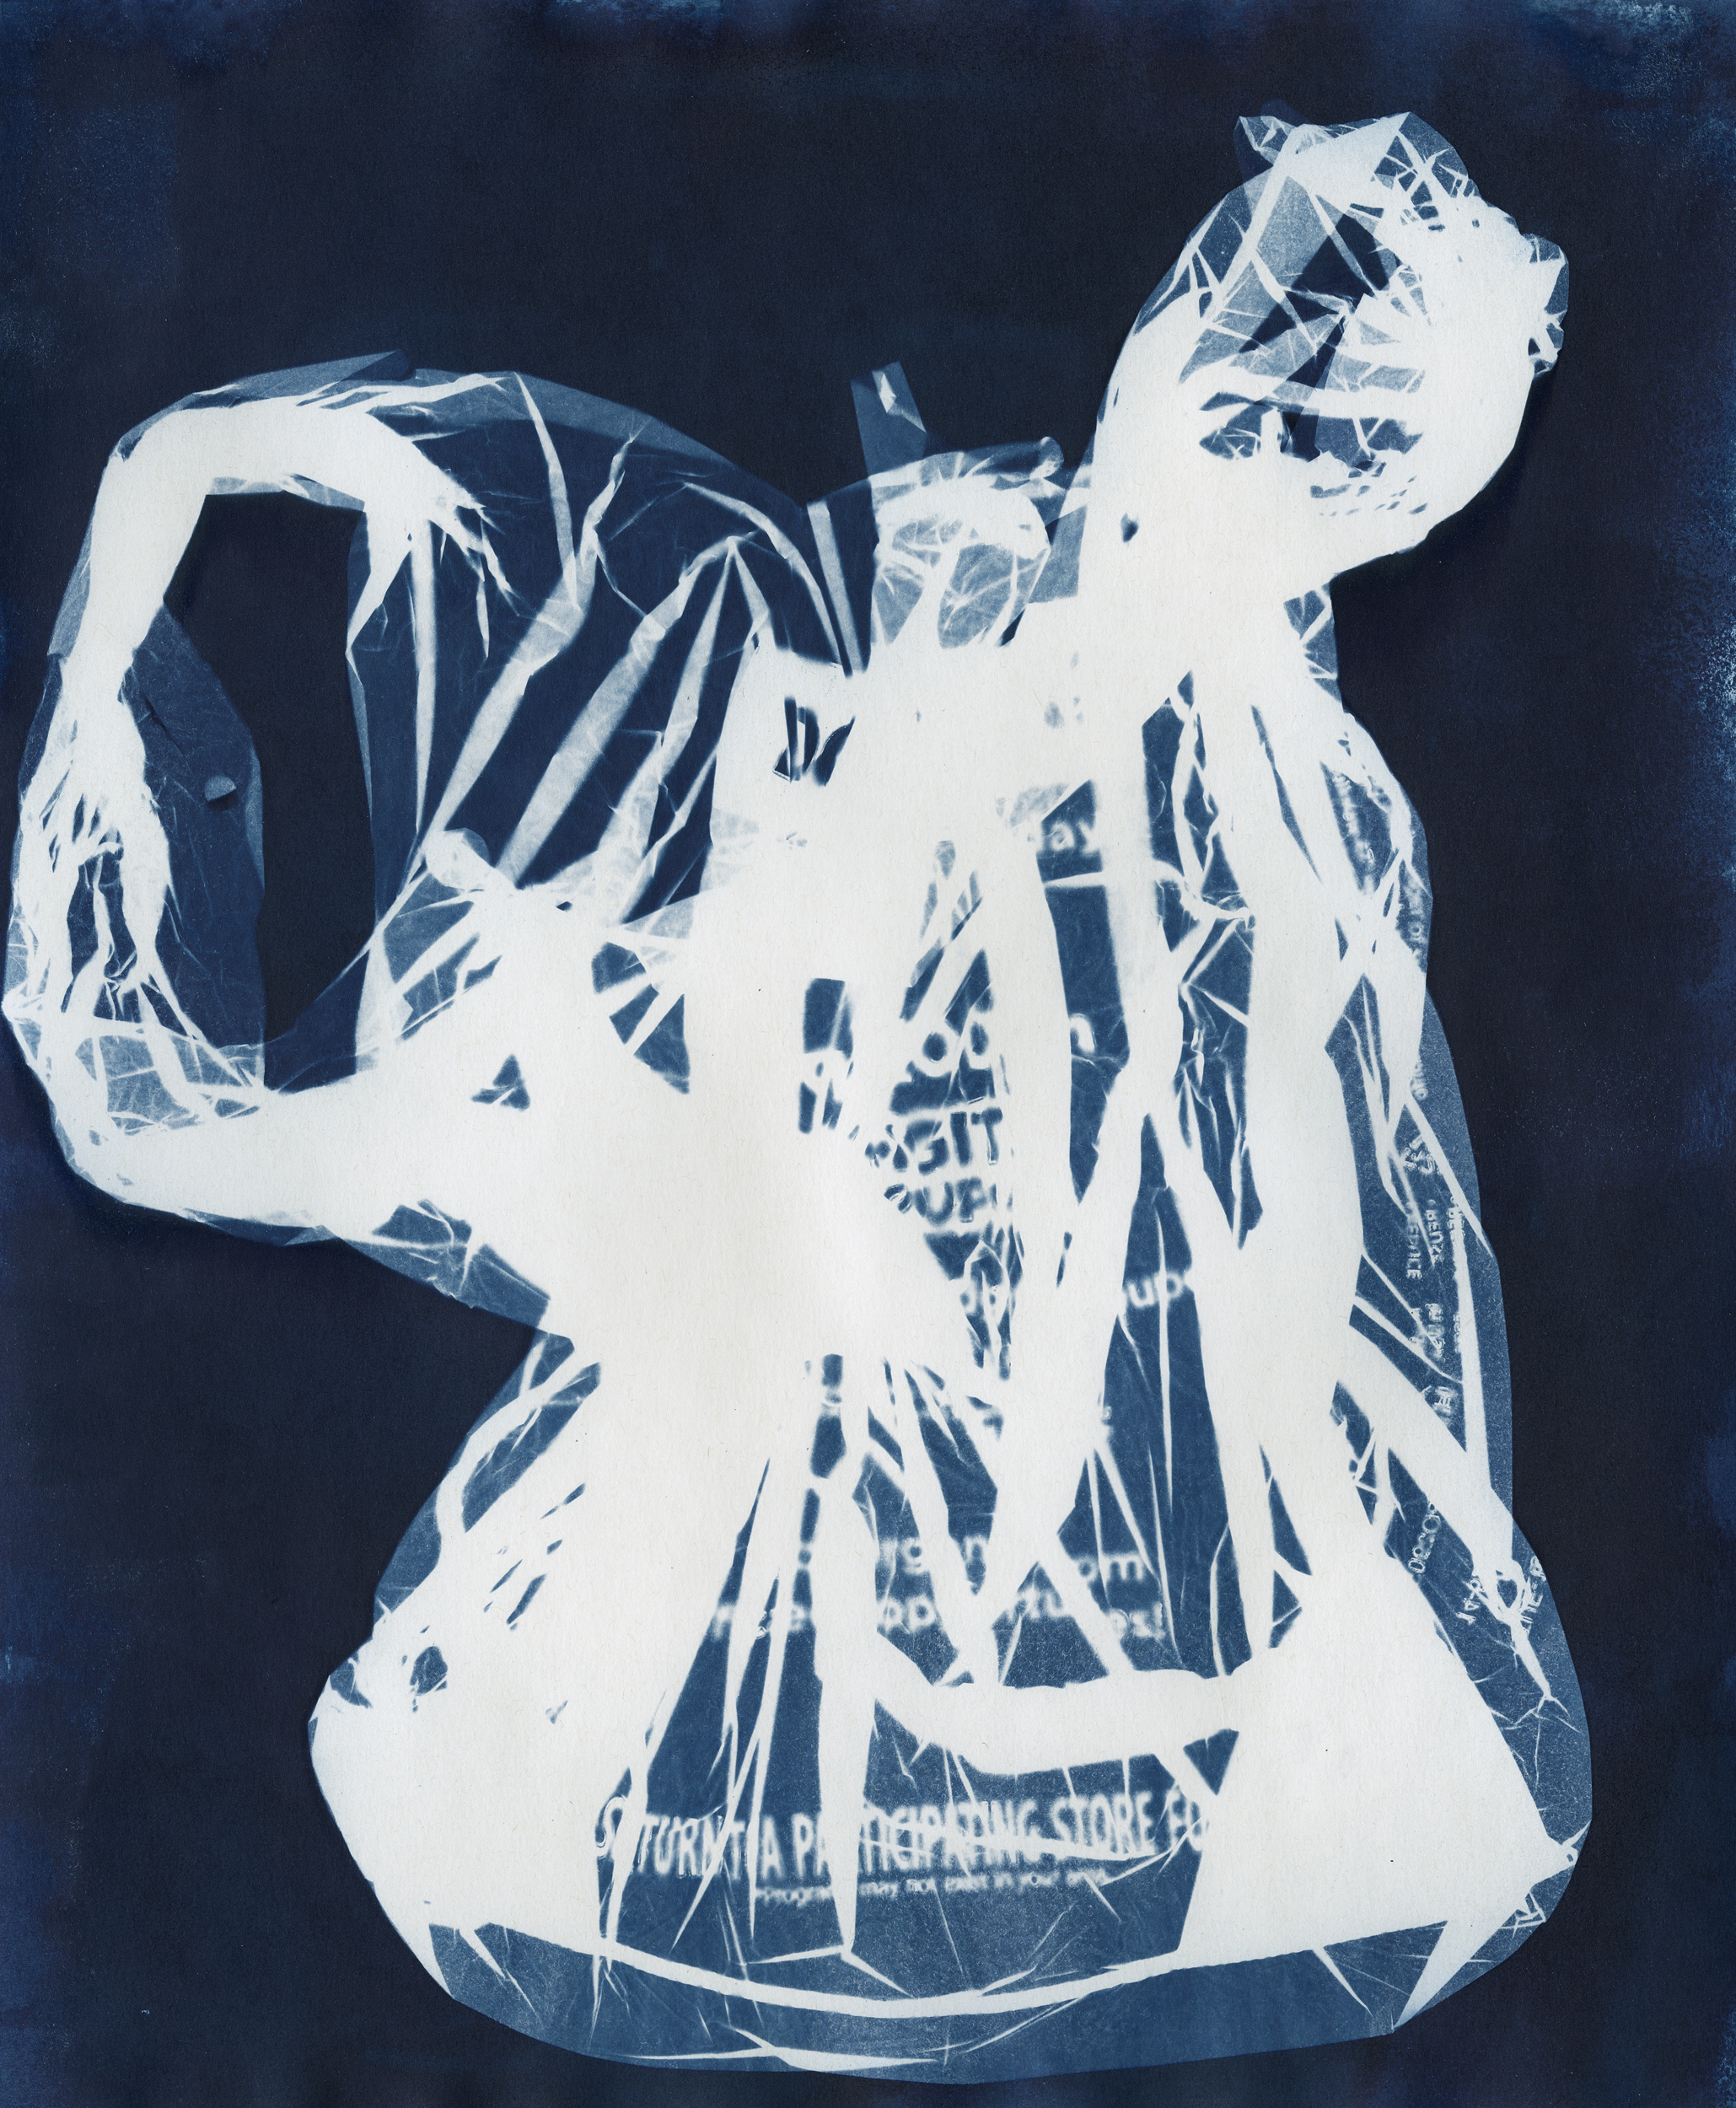 Ellenwood_Cyanotype_ (5).jpg